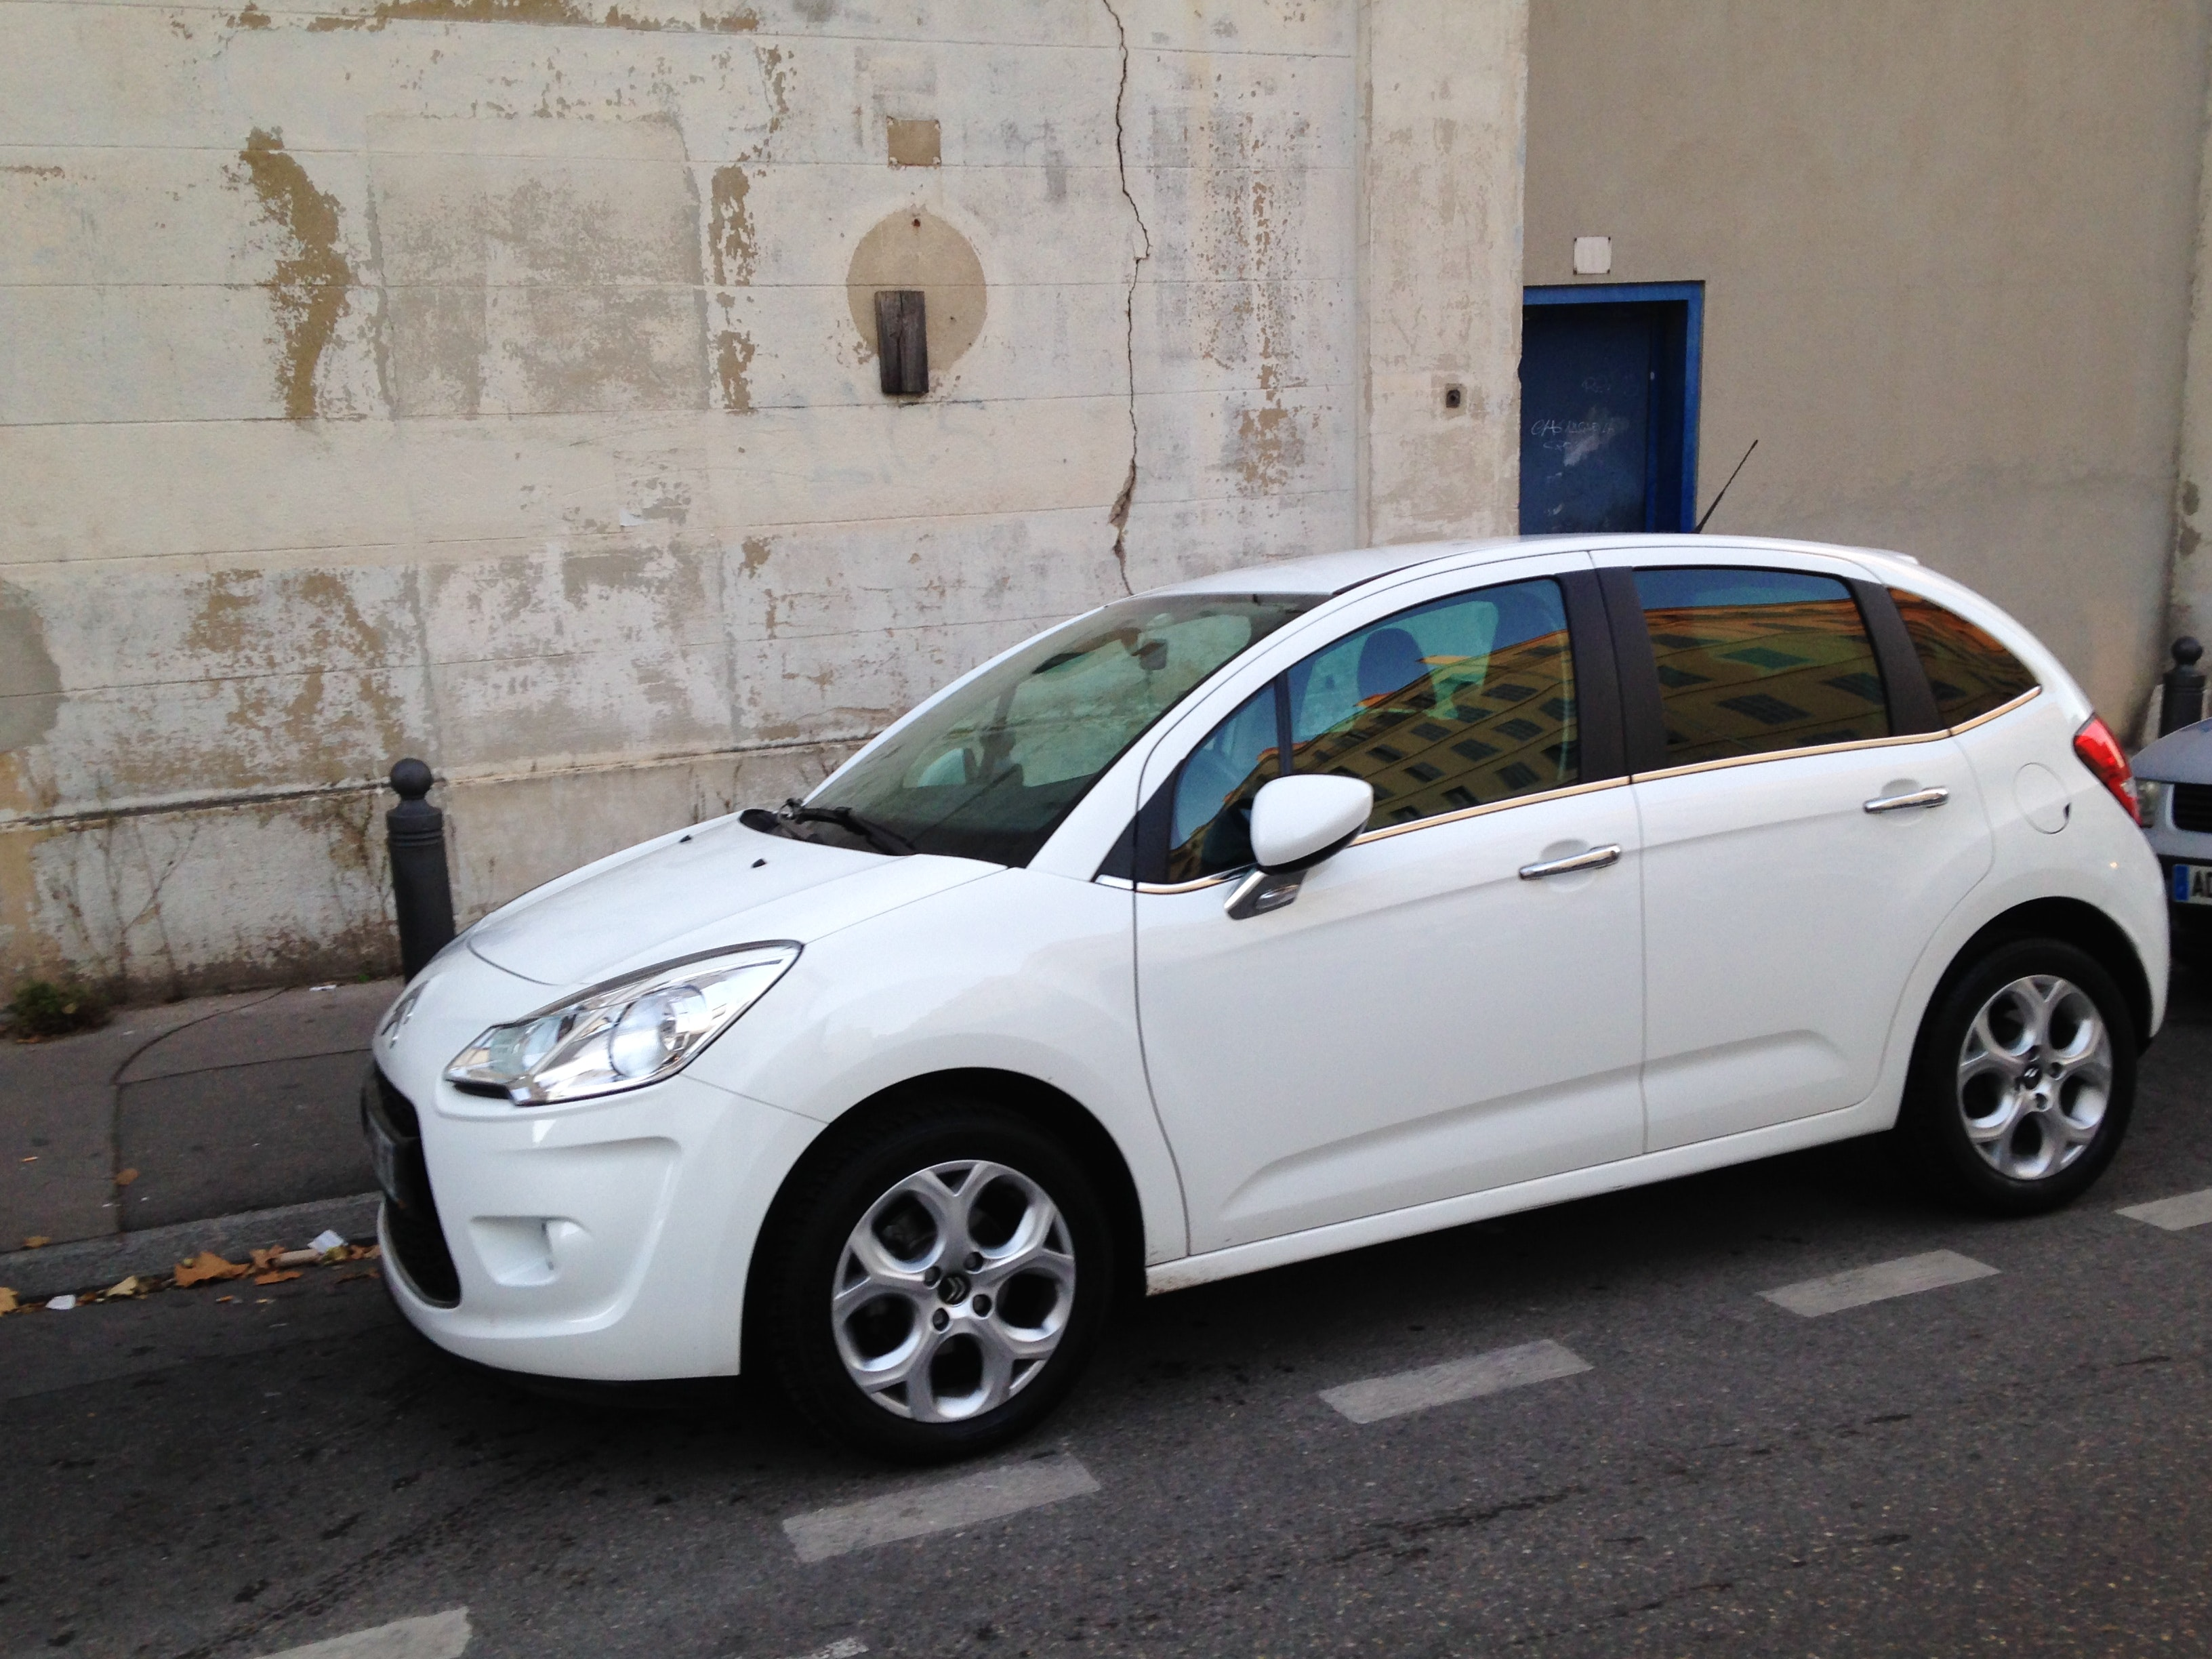 Citroen C3 AIRPLAY 70 CV HDI BLANCHE INTERIEUR NOIR BLANC ET PACK CUIR/CHROME, 2011, Diesel